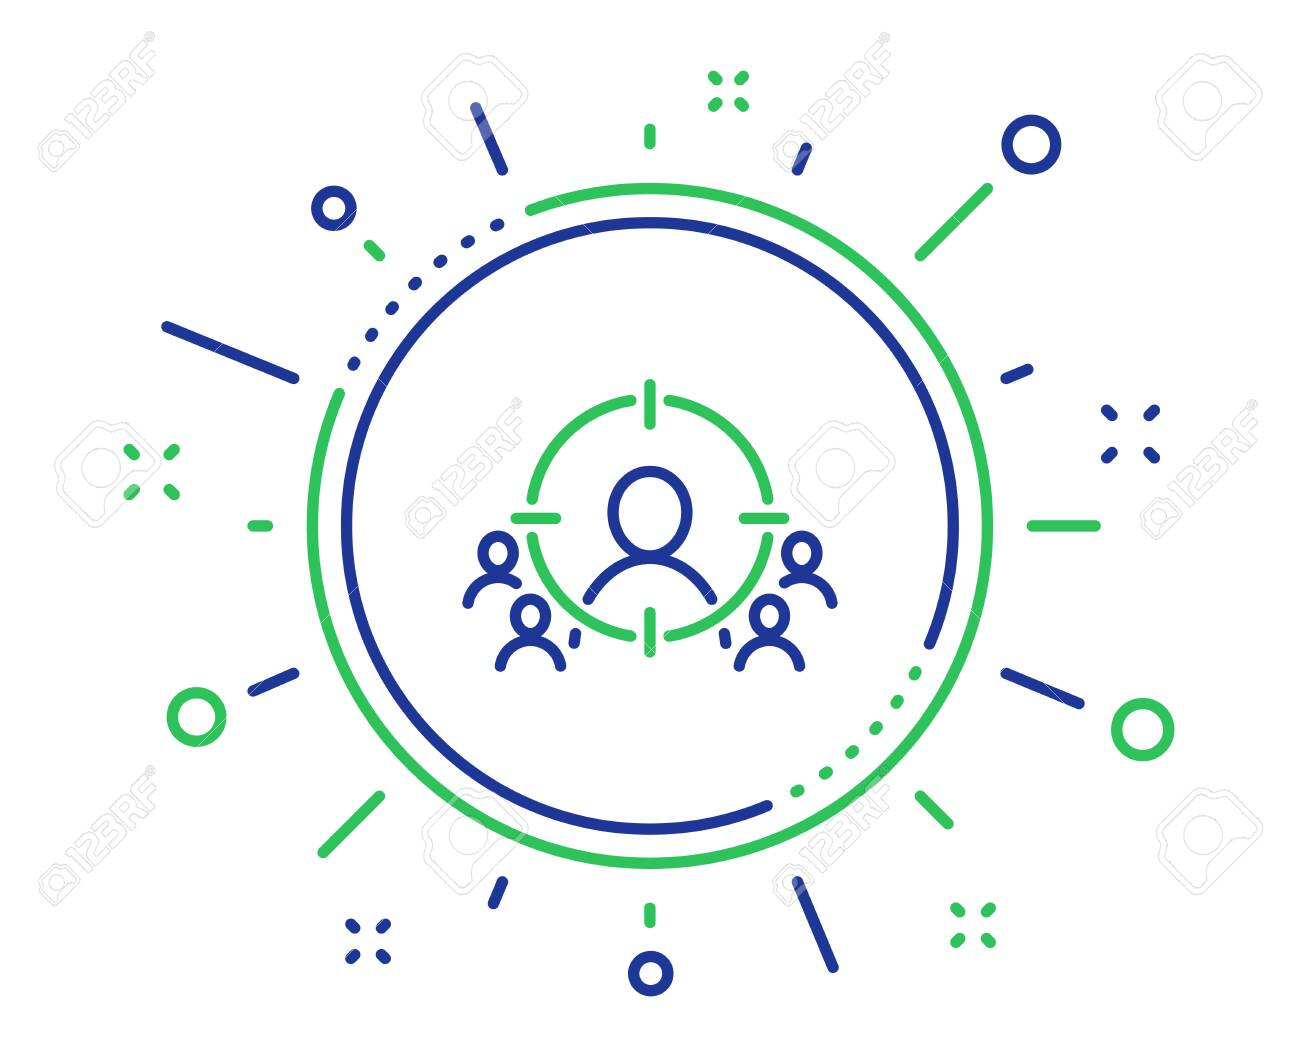 Business targeting line icon. Marketing target strategy symbol. Aim with people sign. Quality design elements. Technology business targeting button. Editable stroke. Vector - 124282750